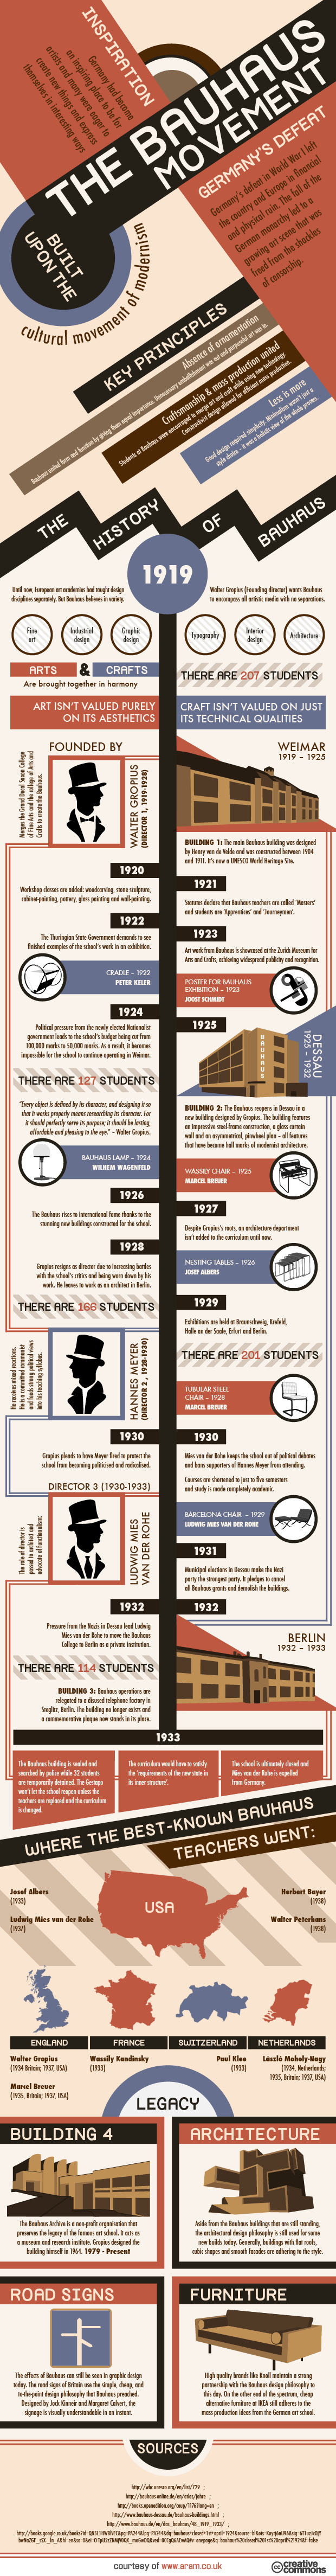 Infographic The Bauhaus Movement And The School That Started It All